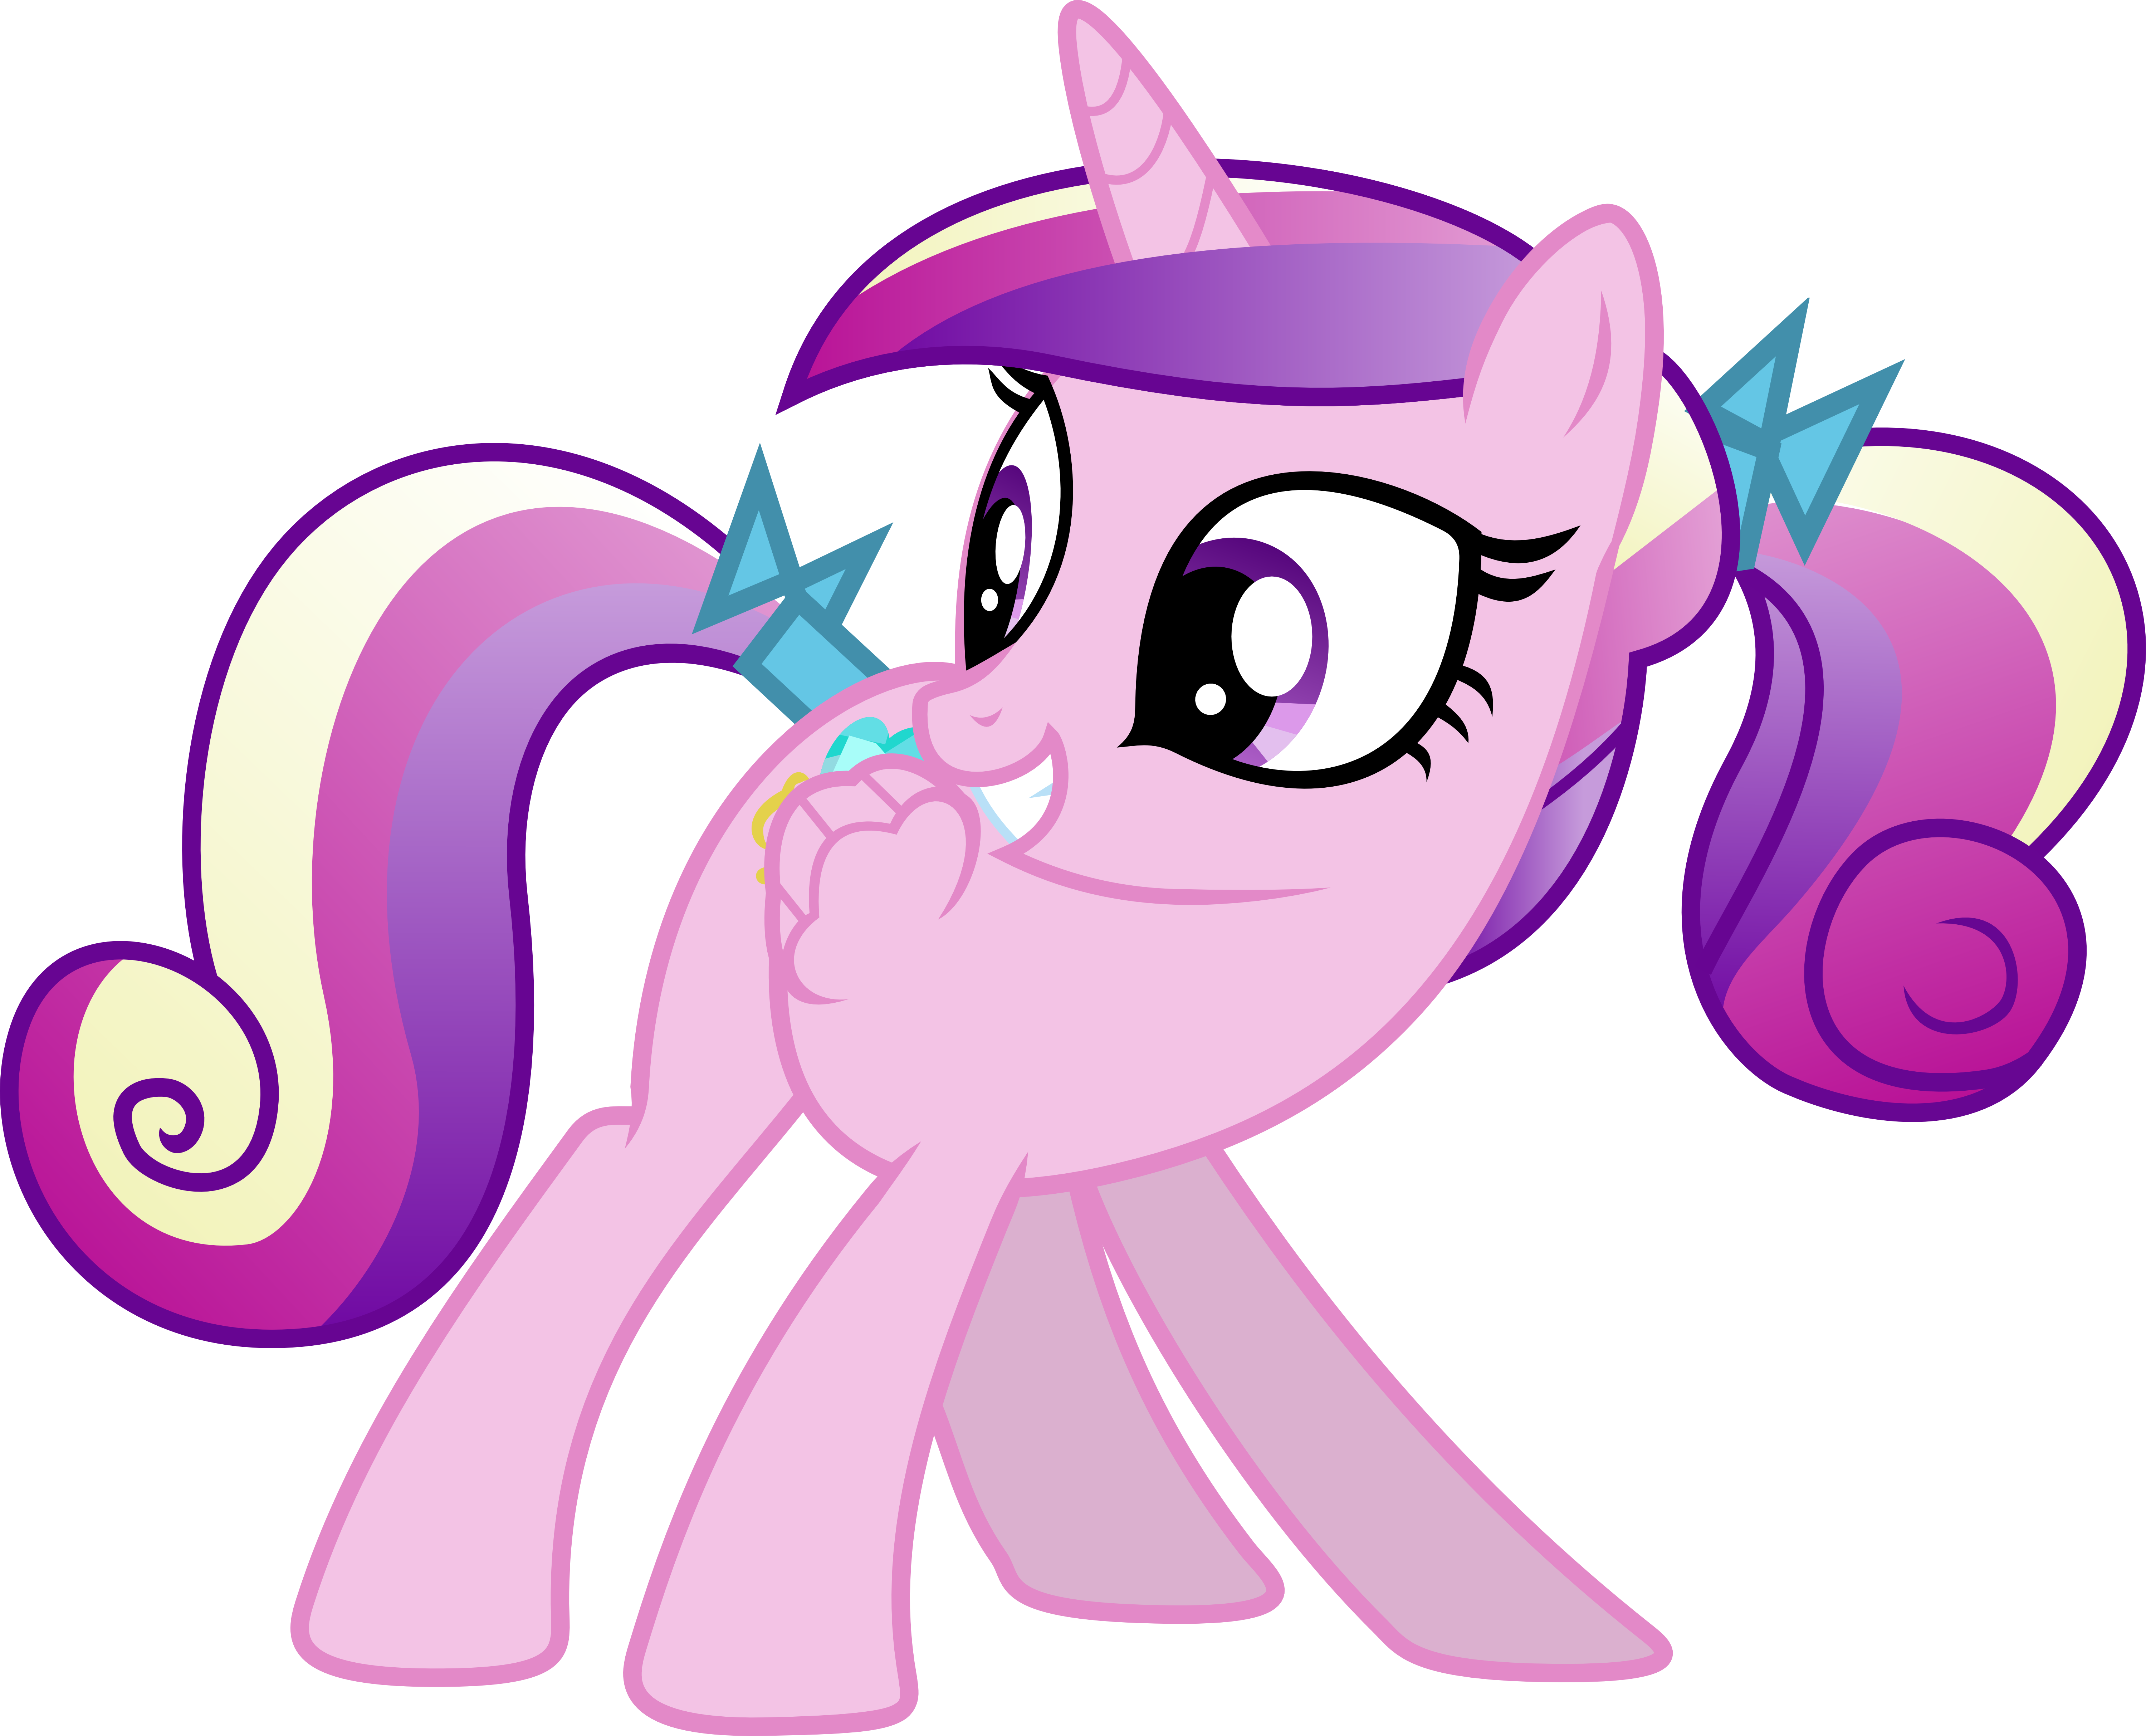 Filly cadence by zomgmad on deviantart - My little pony cadence ...